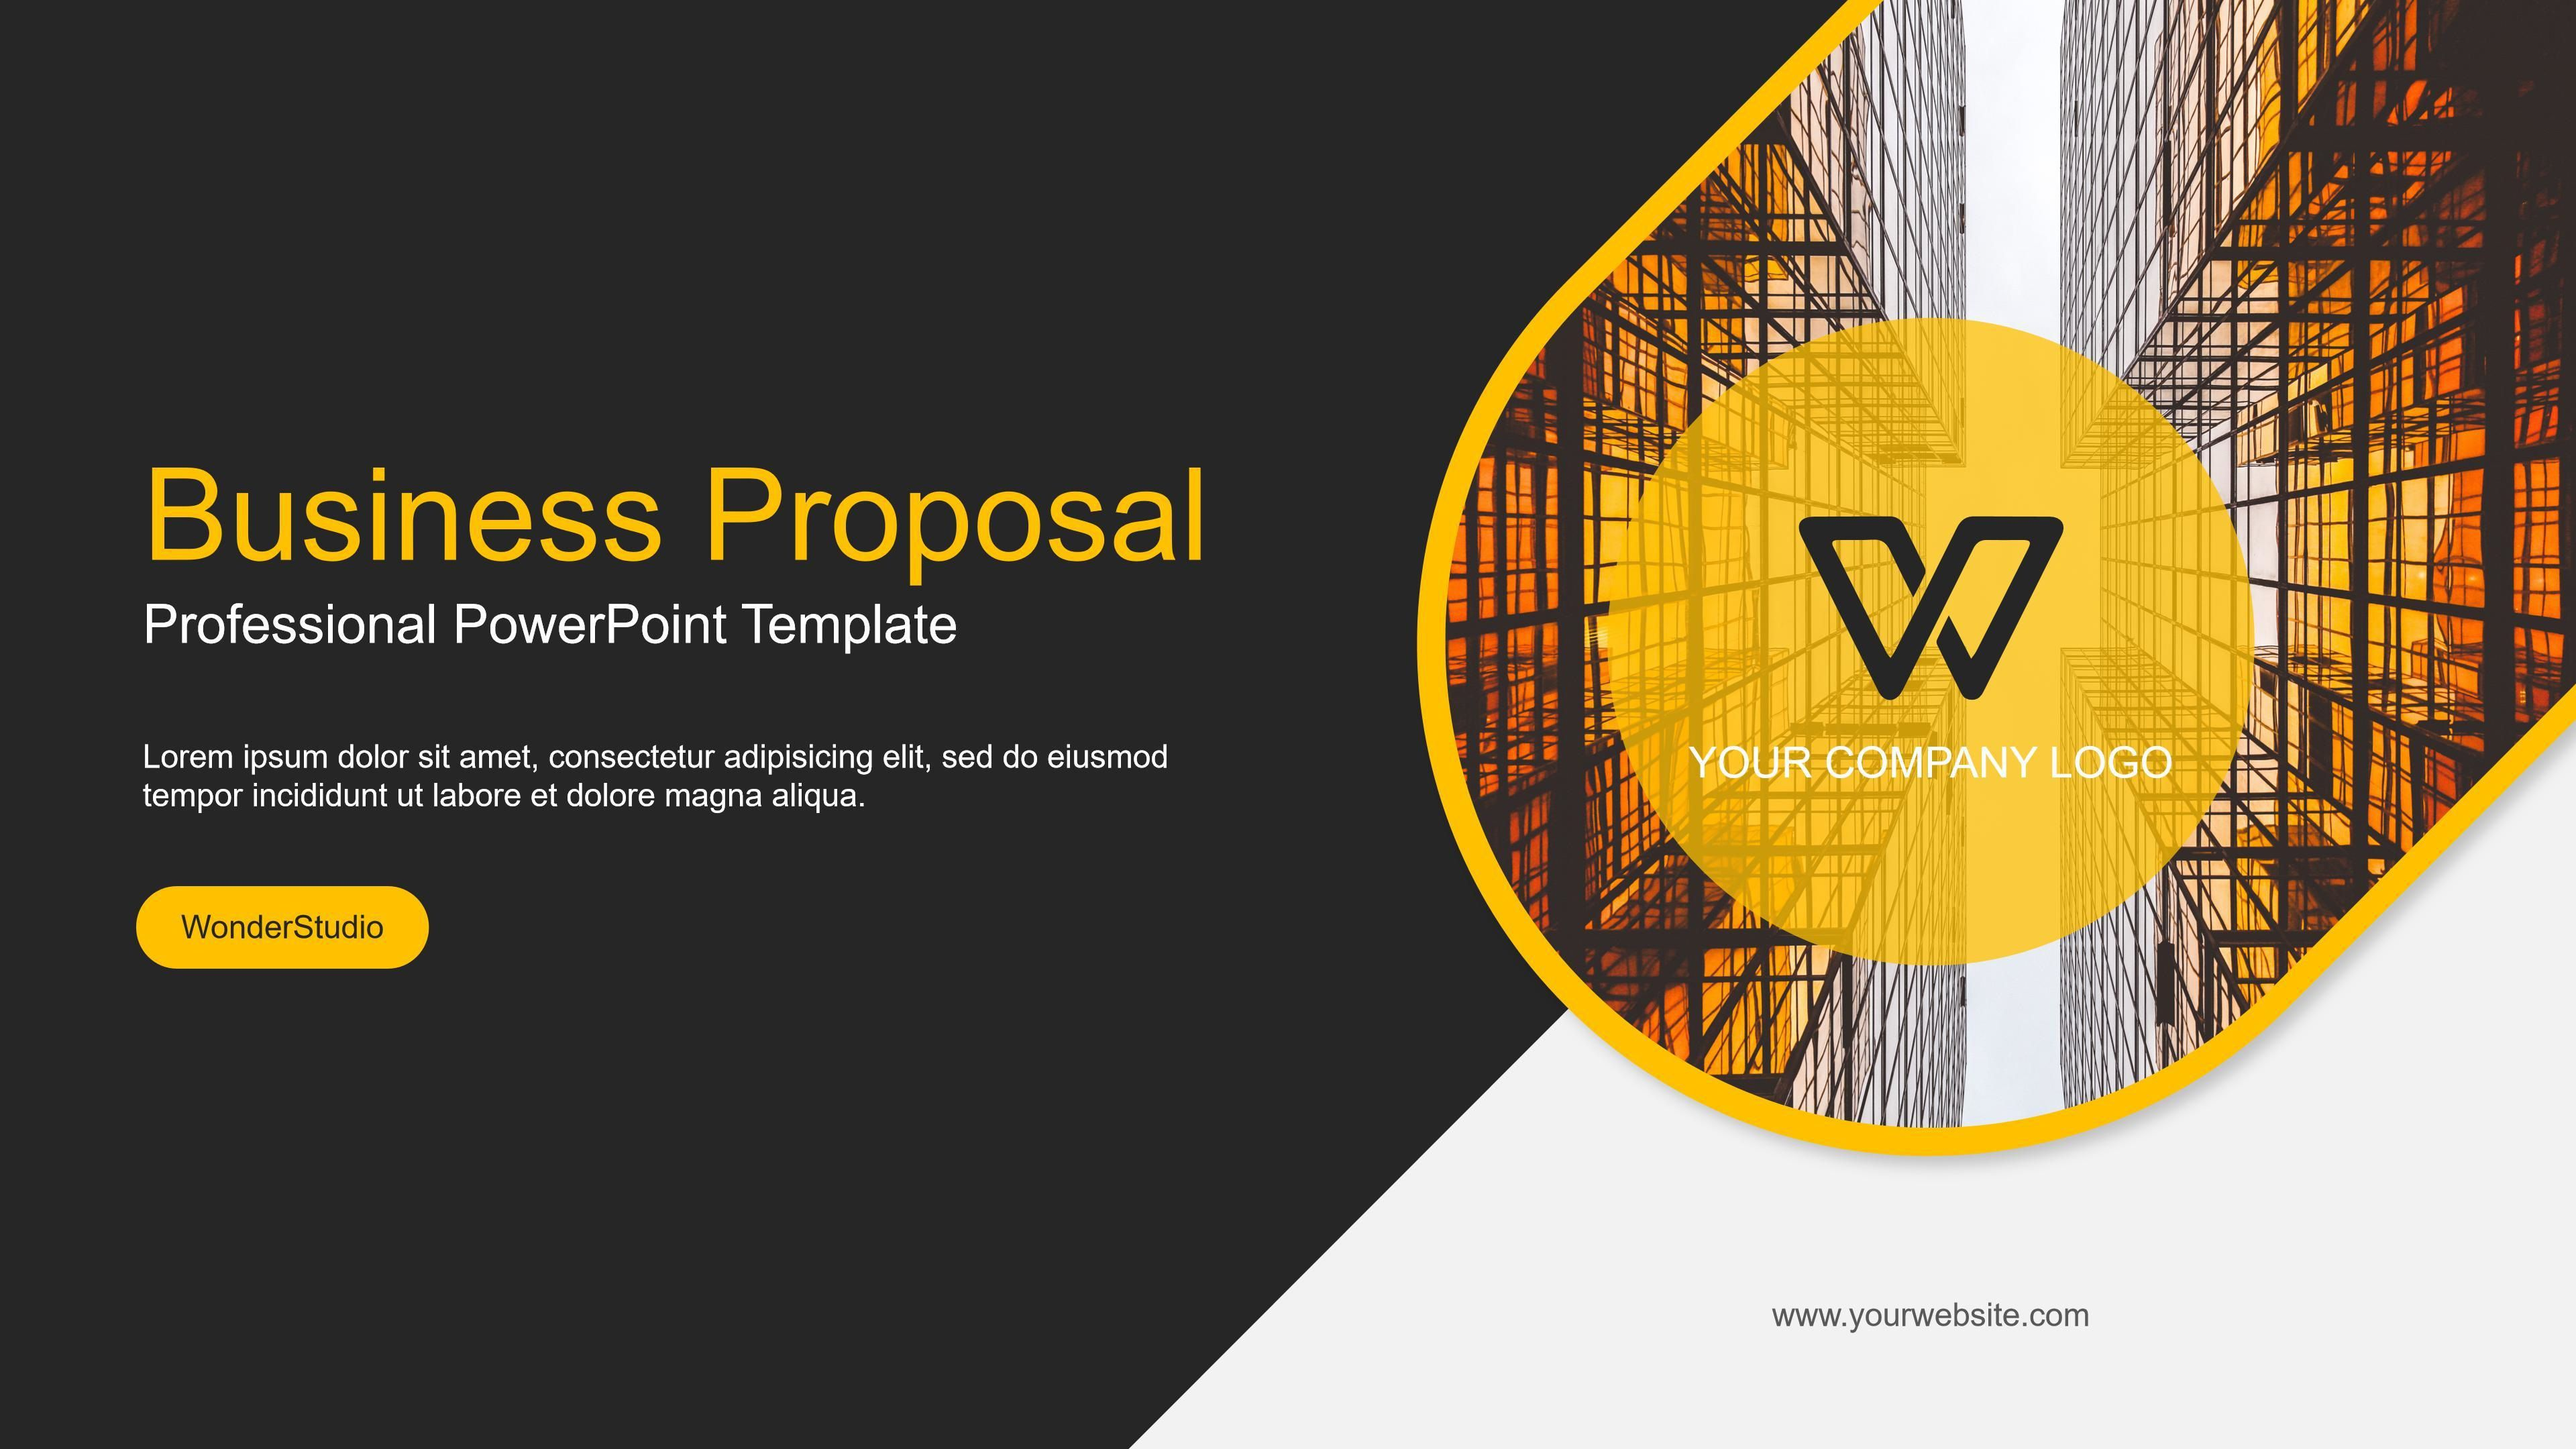 004 Top Professional Ppt Template Free Download Example  Microsoft 2017 Powerpoint Presentation 2019Full